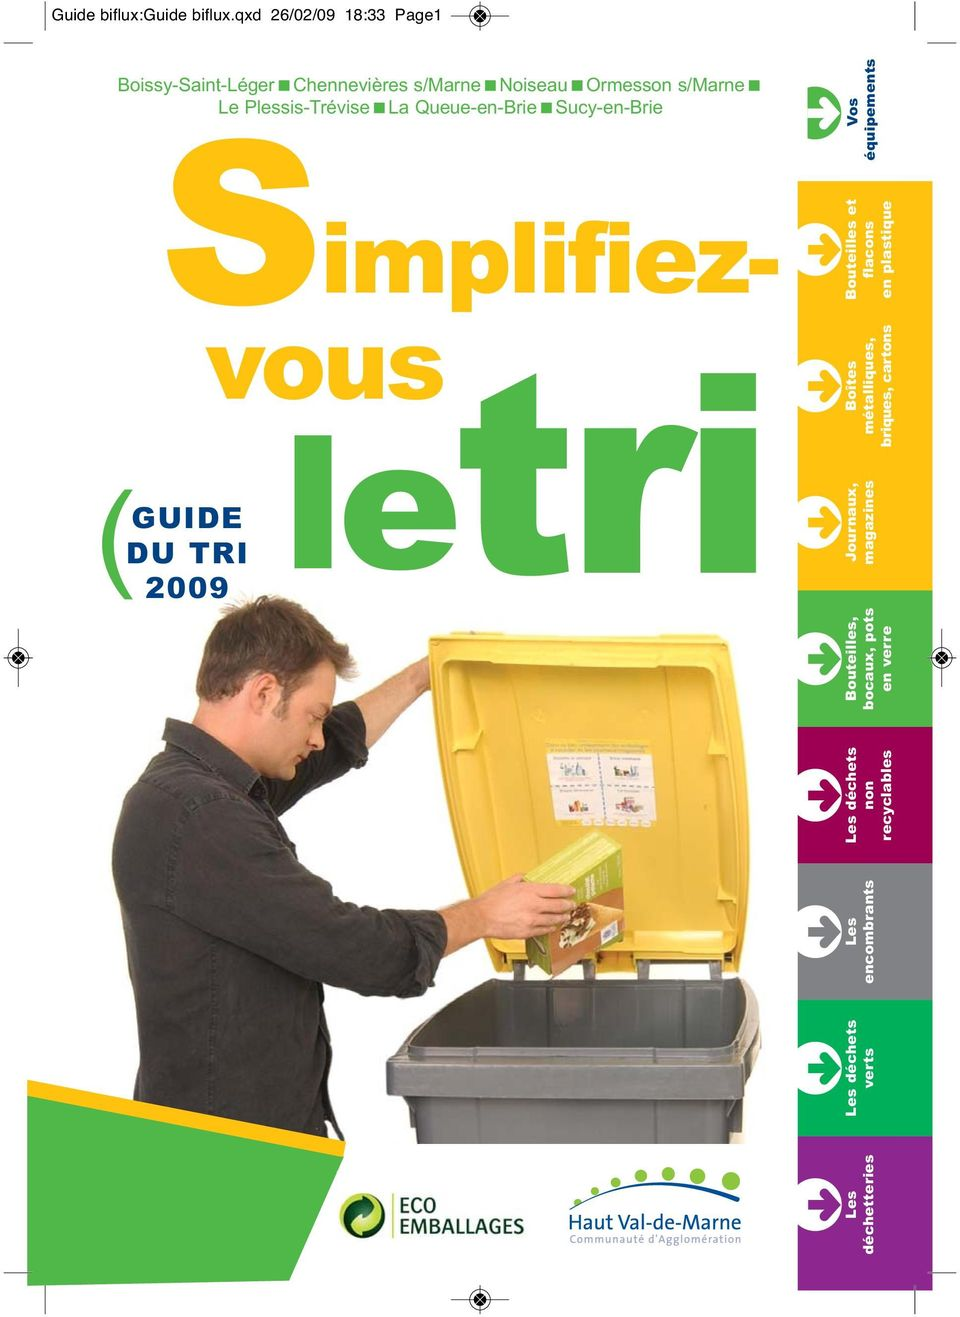 Plessis-Trévise<La Queue-en-Brie<Sucy-en-Brie S Vos équipements Bouteilles et flacons ( GUIDE DU